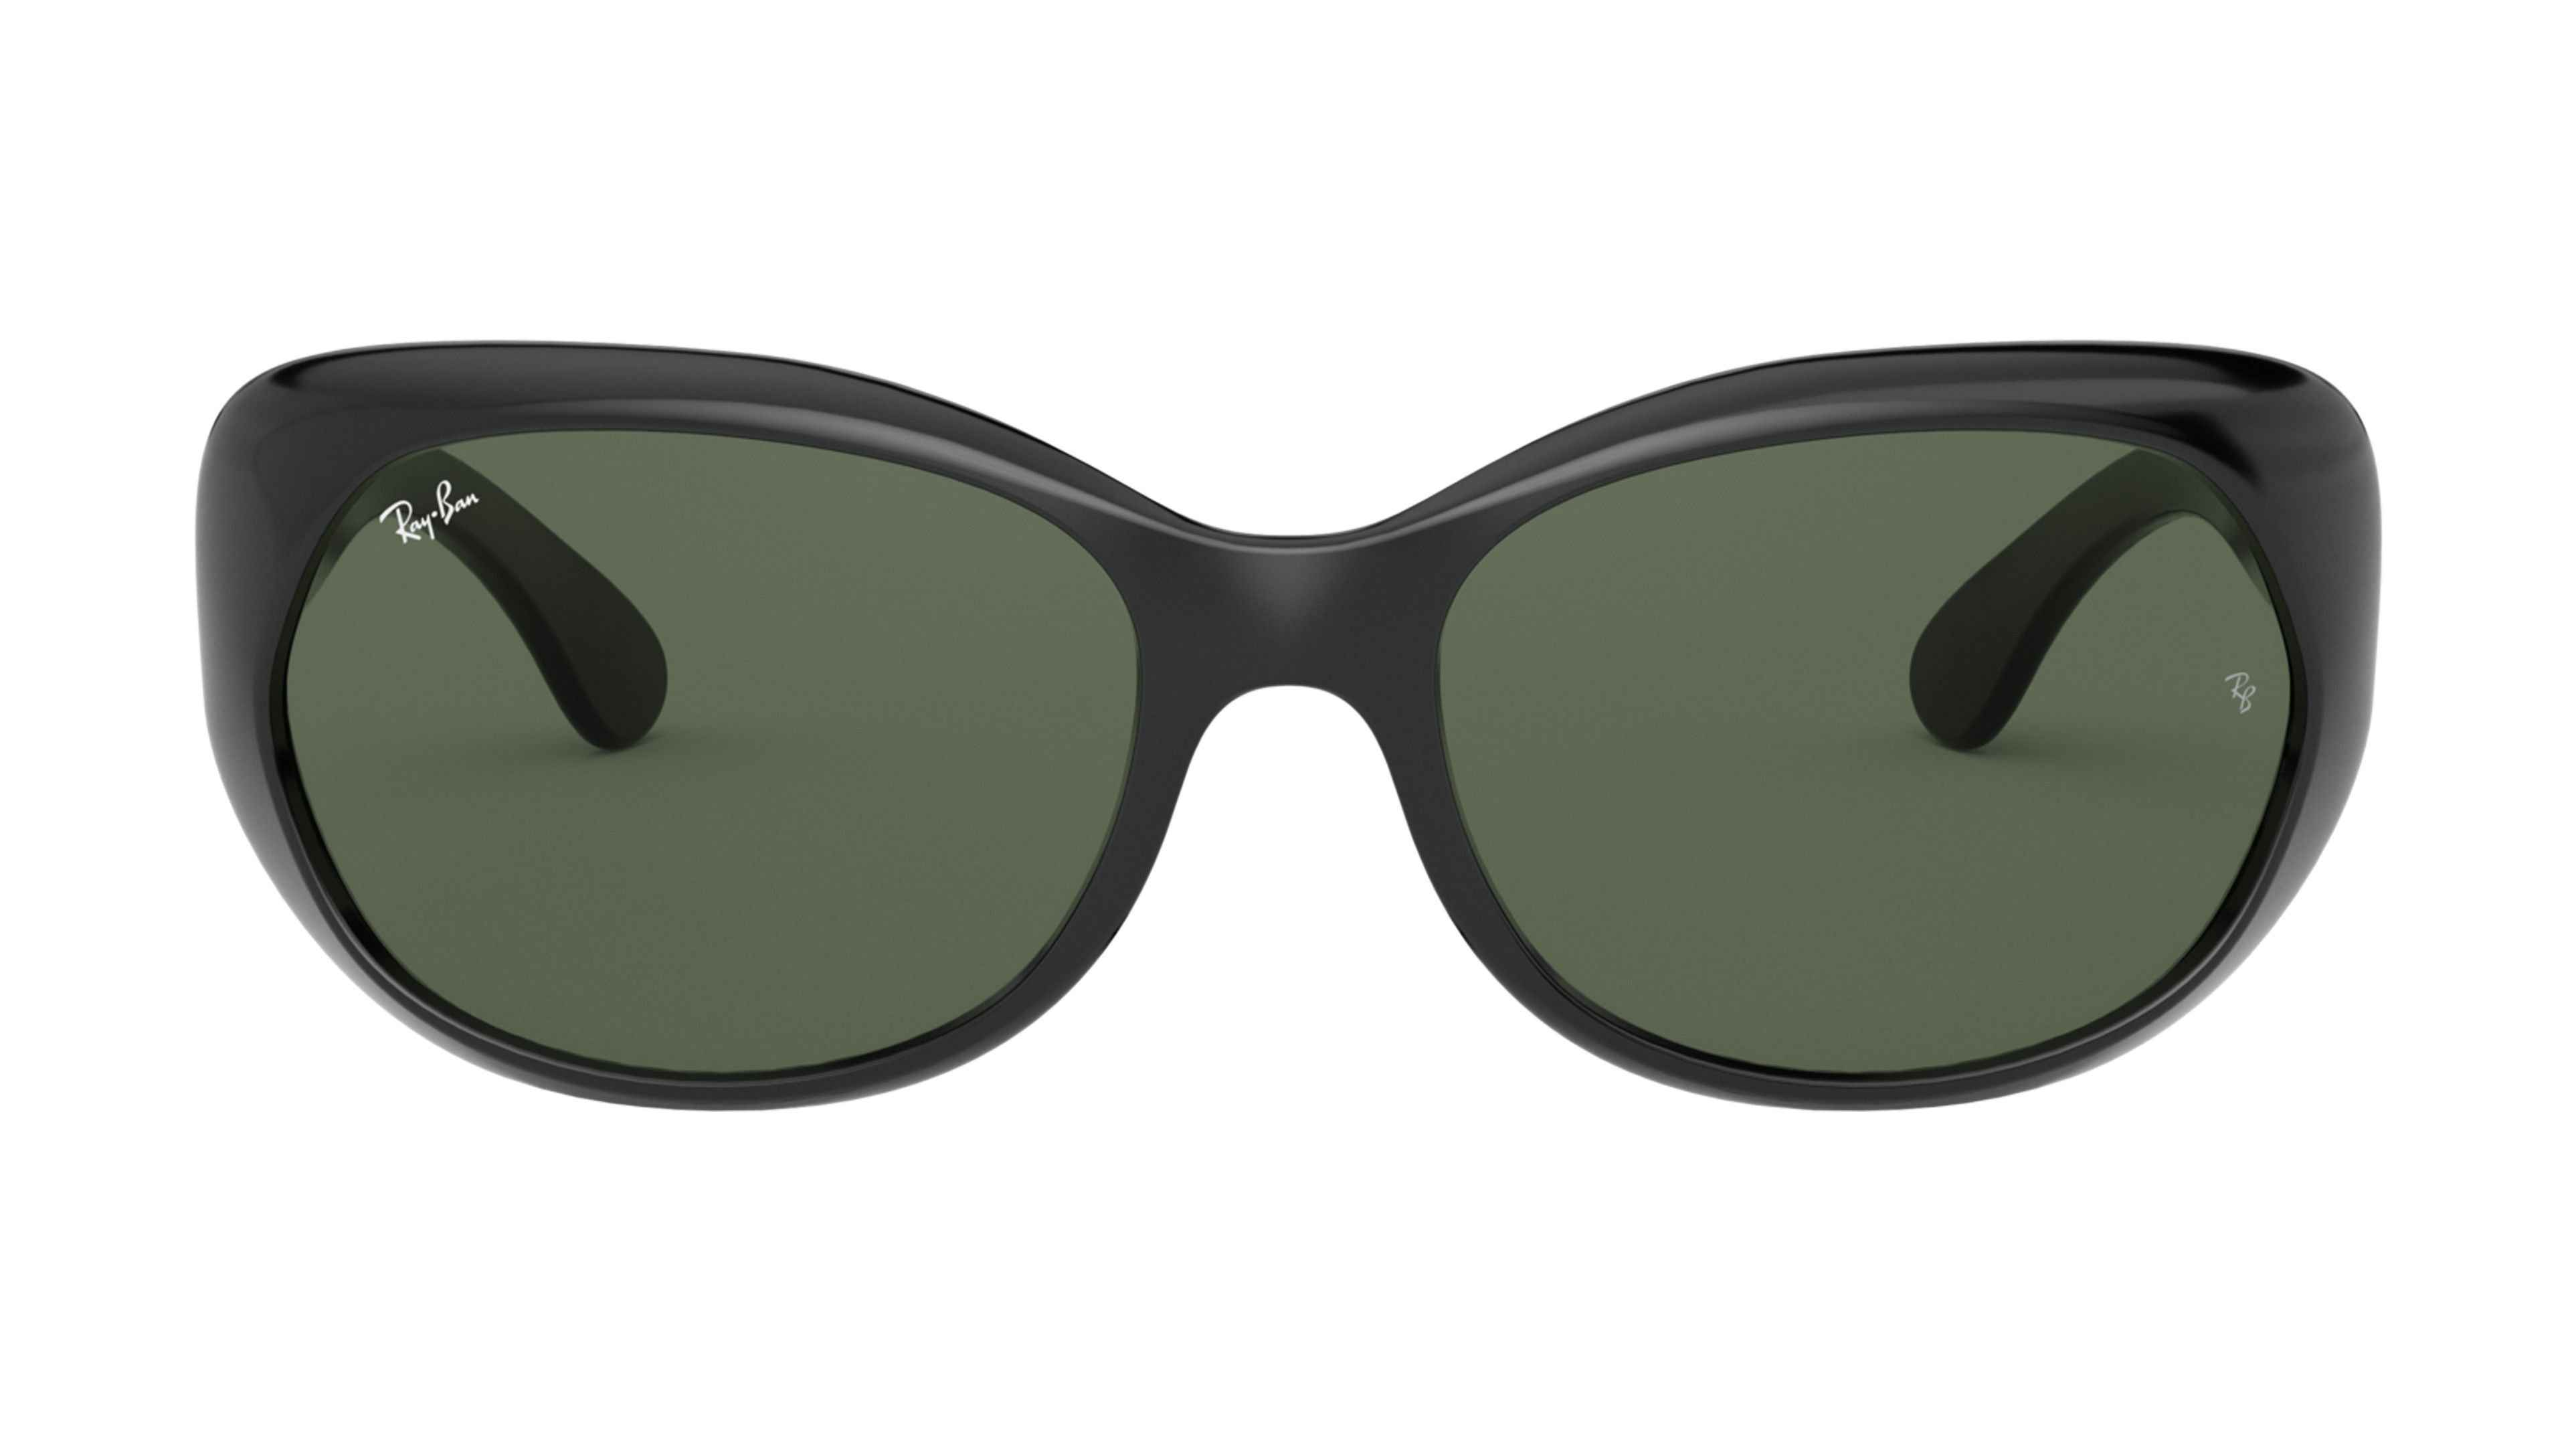 8056597132985-front-ray-ban-sonnenbrille-0RB4325-601-71